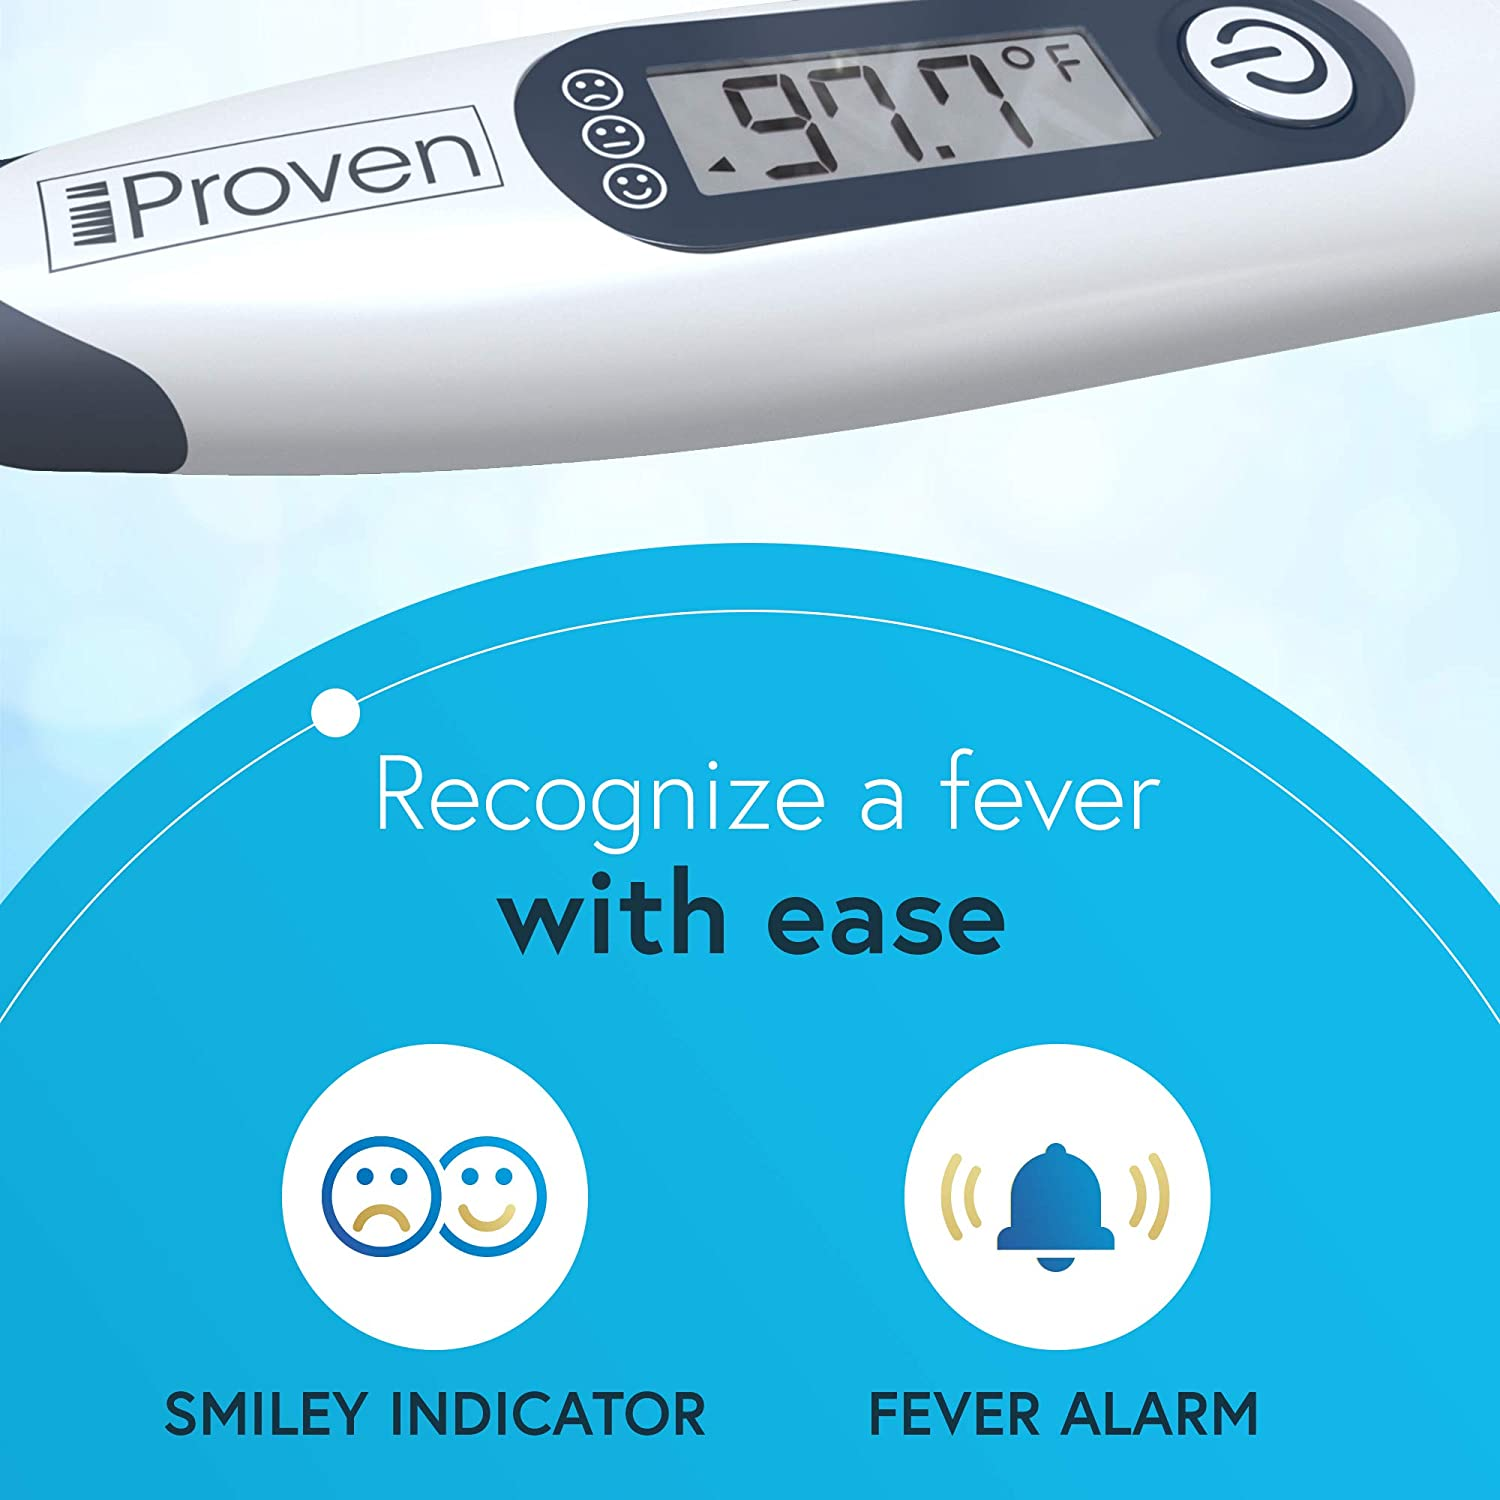 iProven Dt-R1221AWG Medical Thermometer, Oral & Rectal Thermometer with Fever Indicator